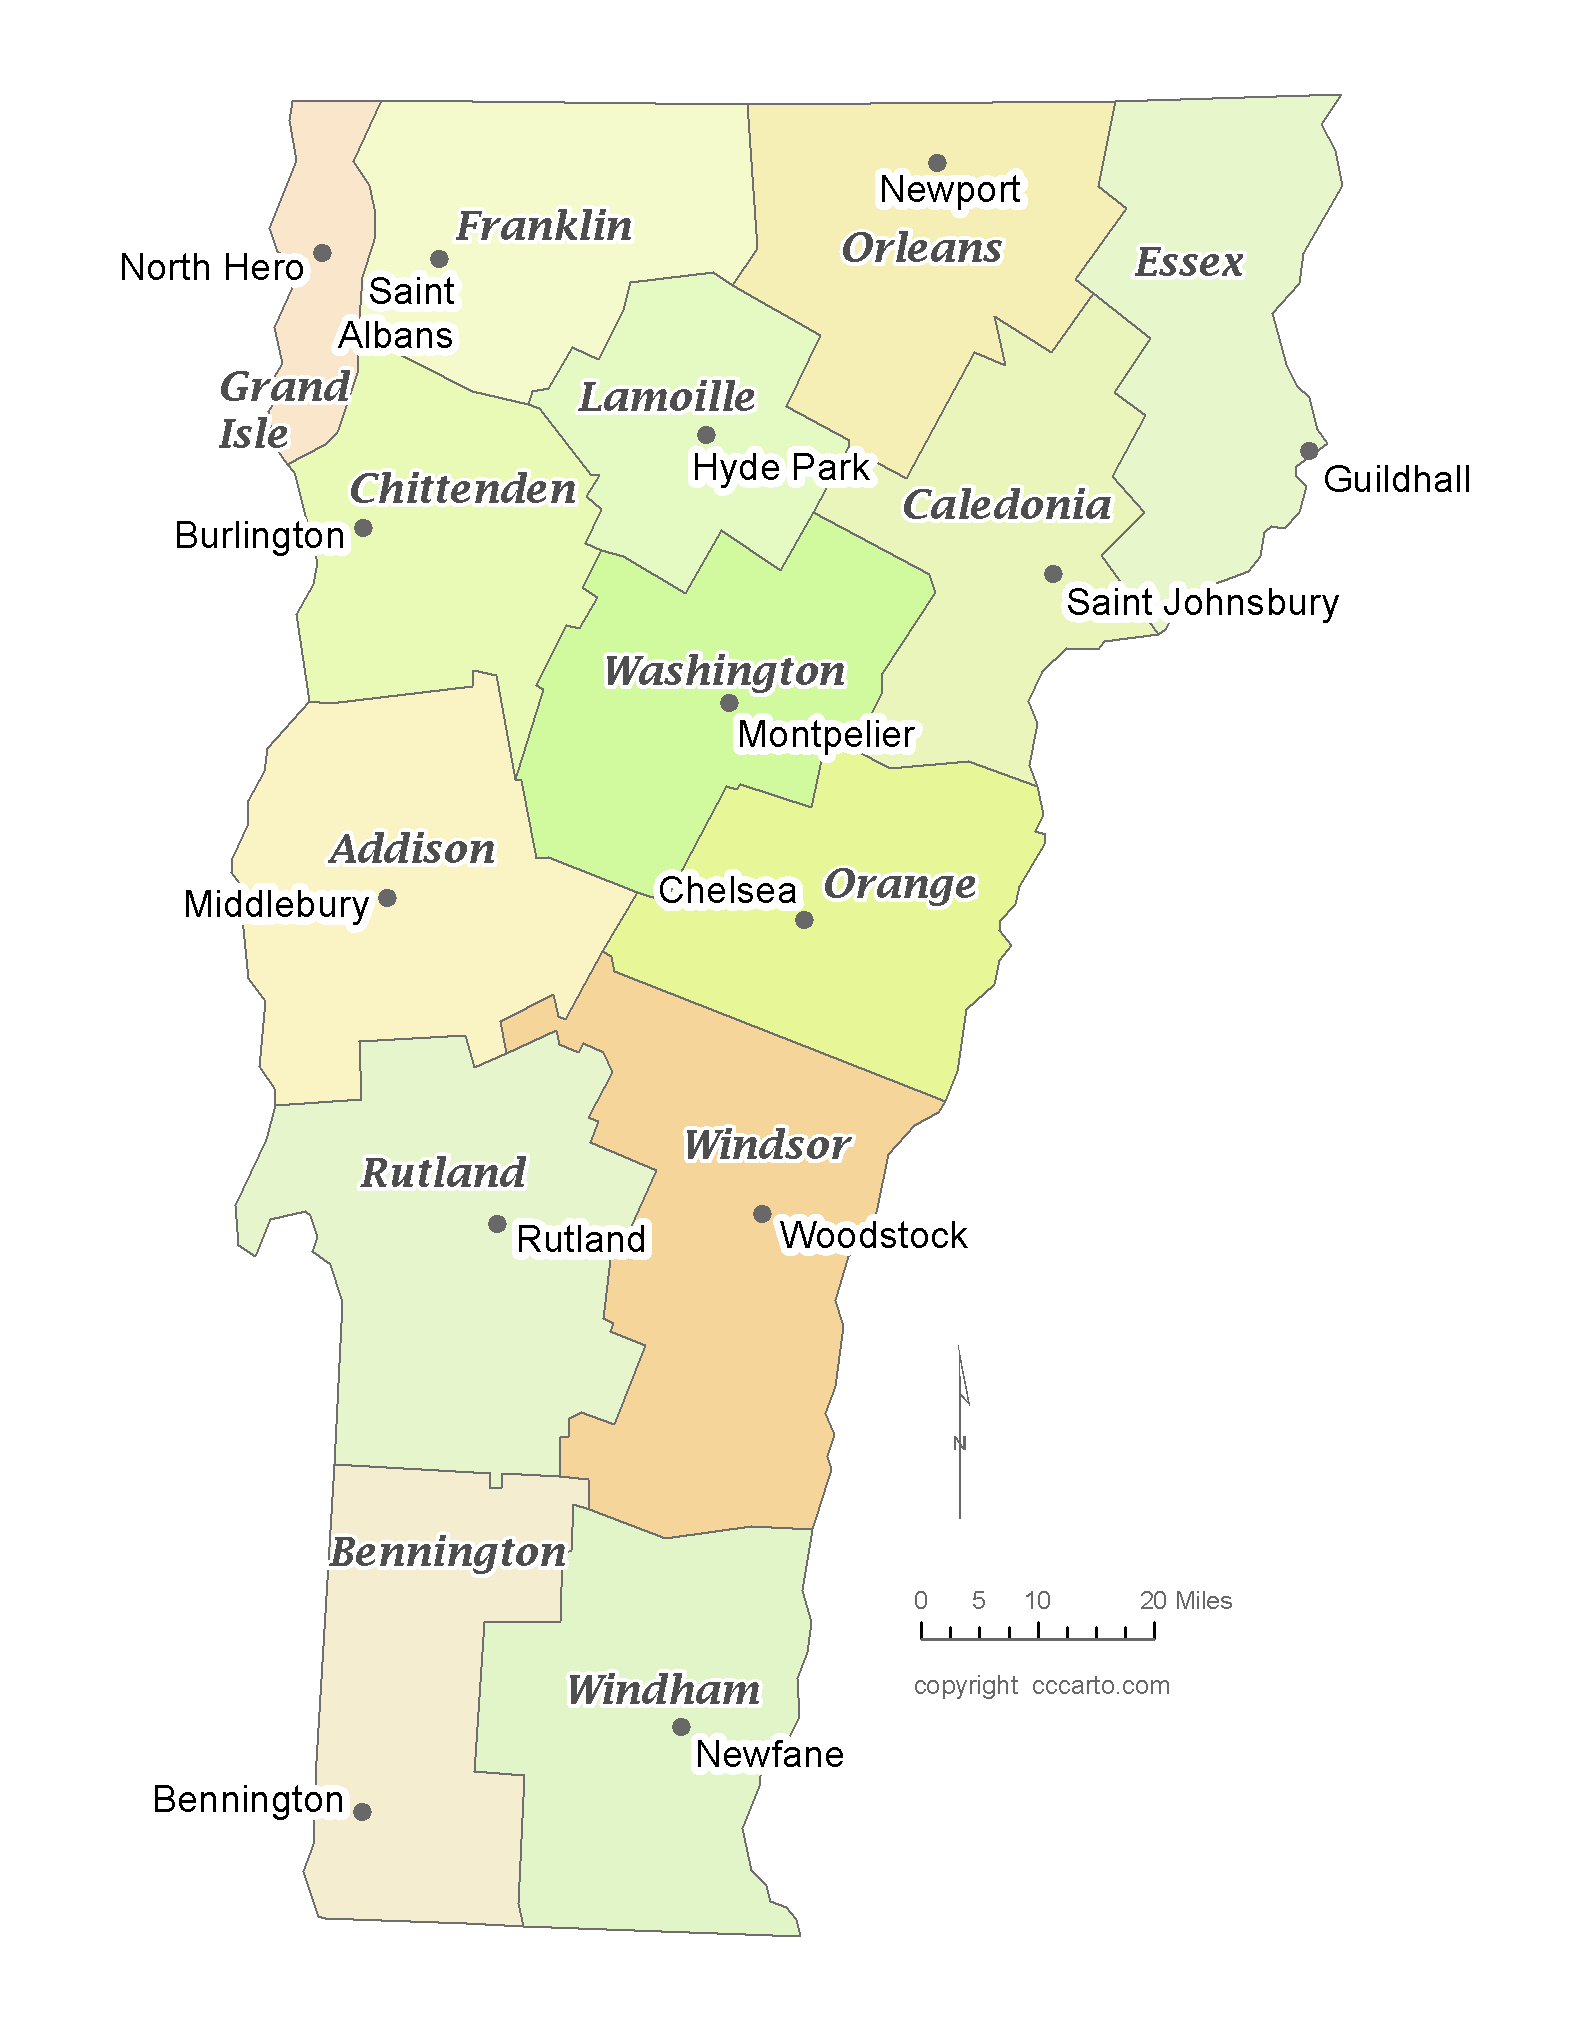 State of Vermont County Map with the County Seats - CCCarto